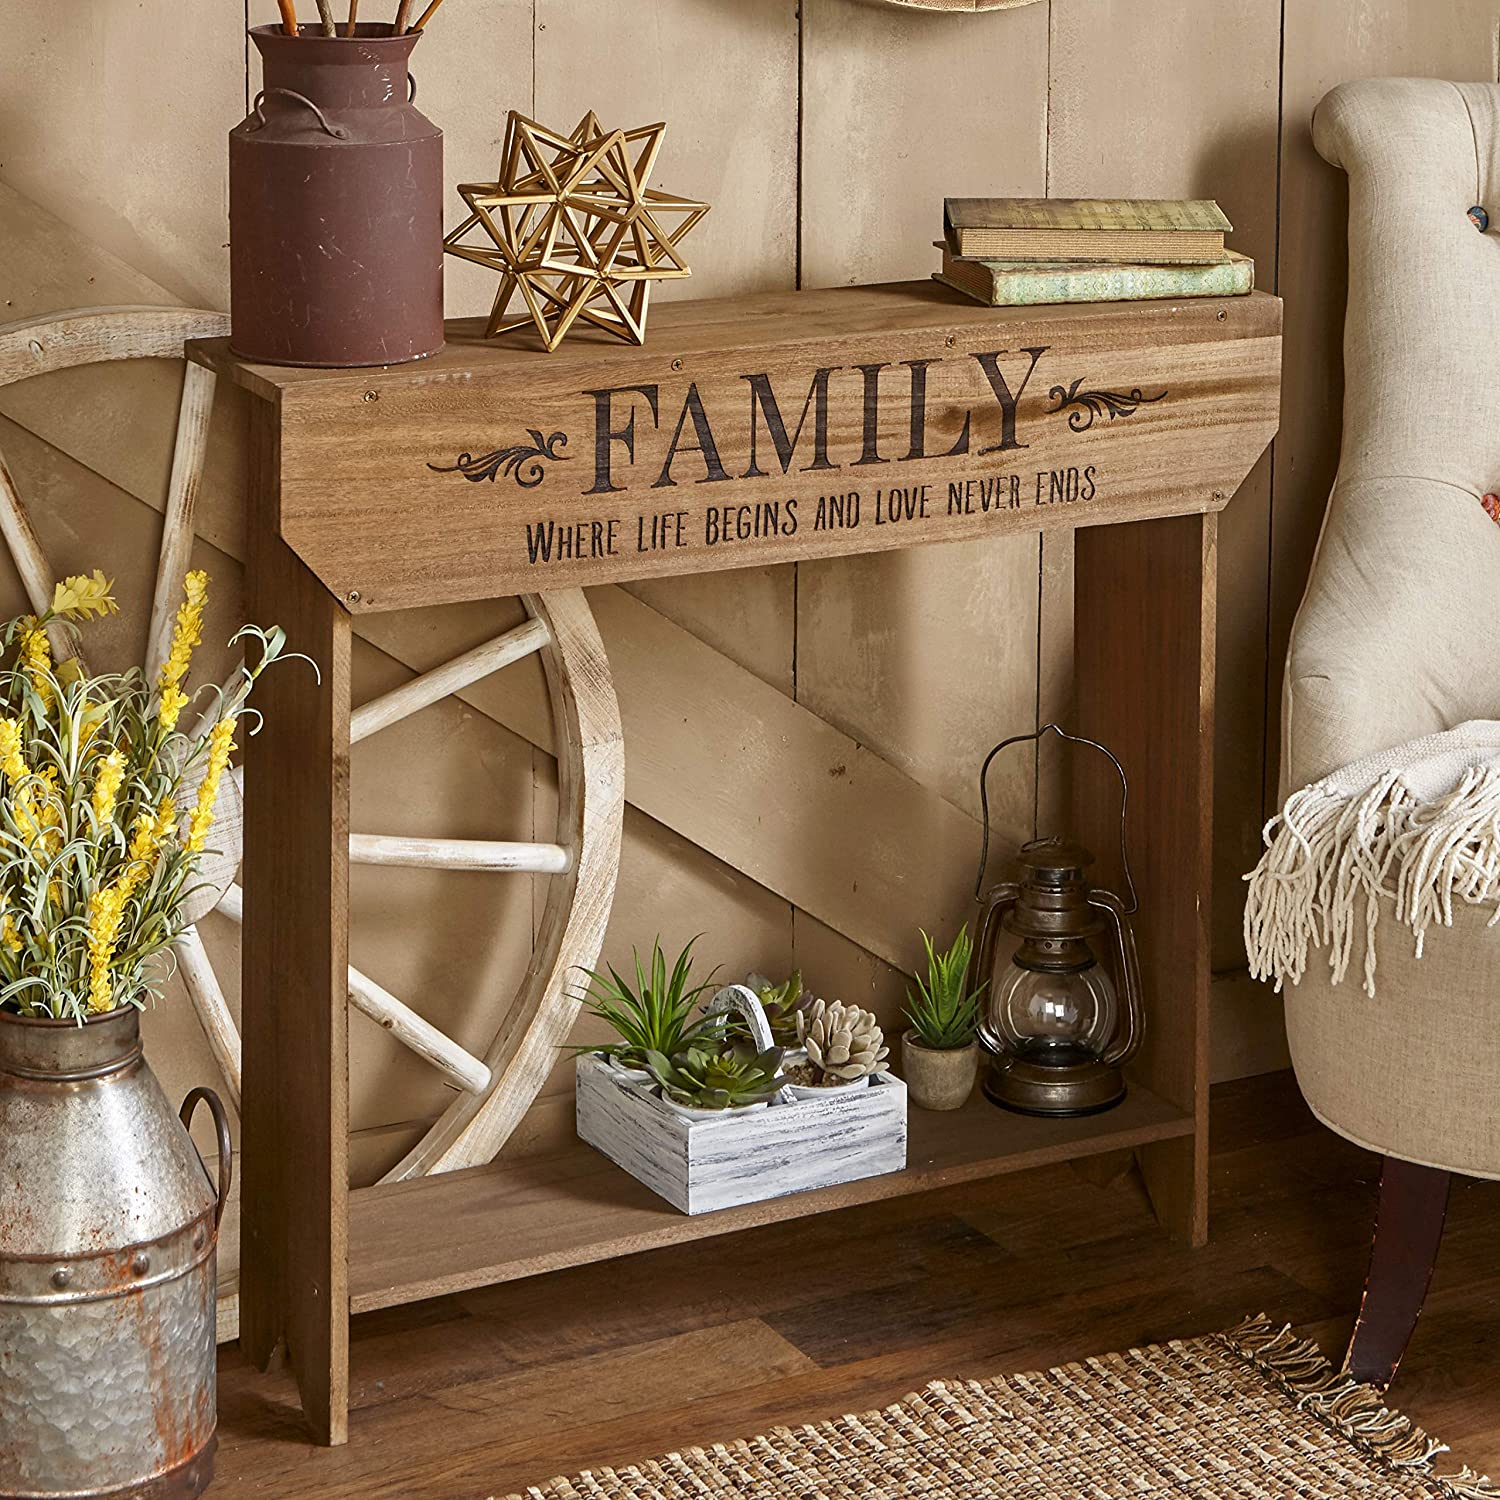 The Lakeside Collection Farmhouse Sentiment Console Table - Family - Rustic Country Decor